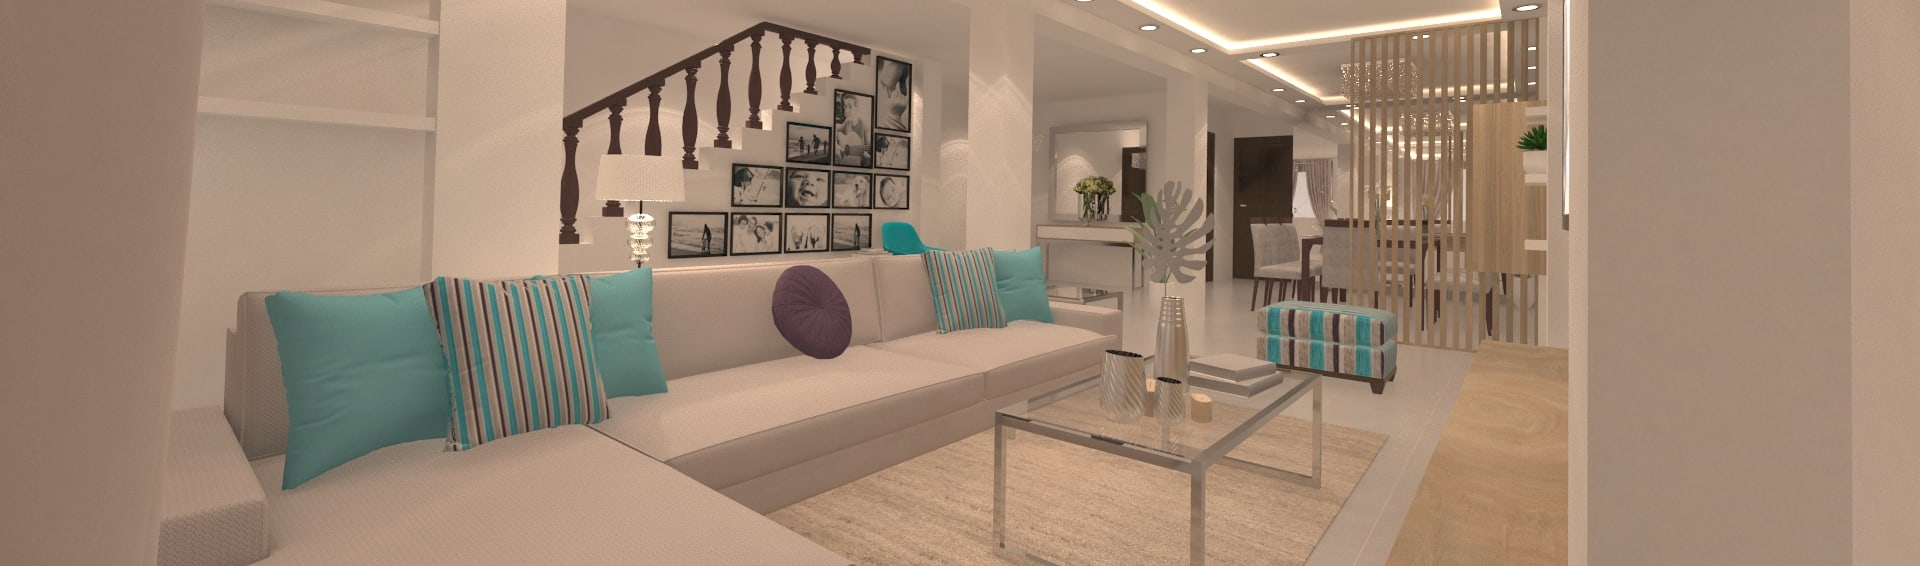 Giovanna Solano – DLuxy Muebles Design